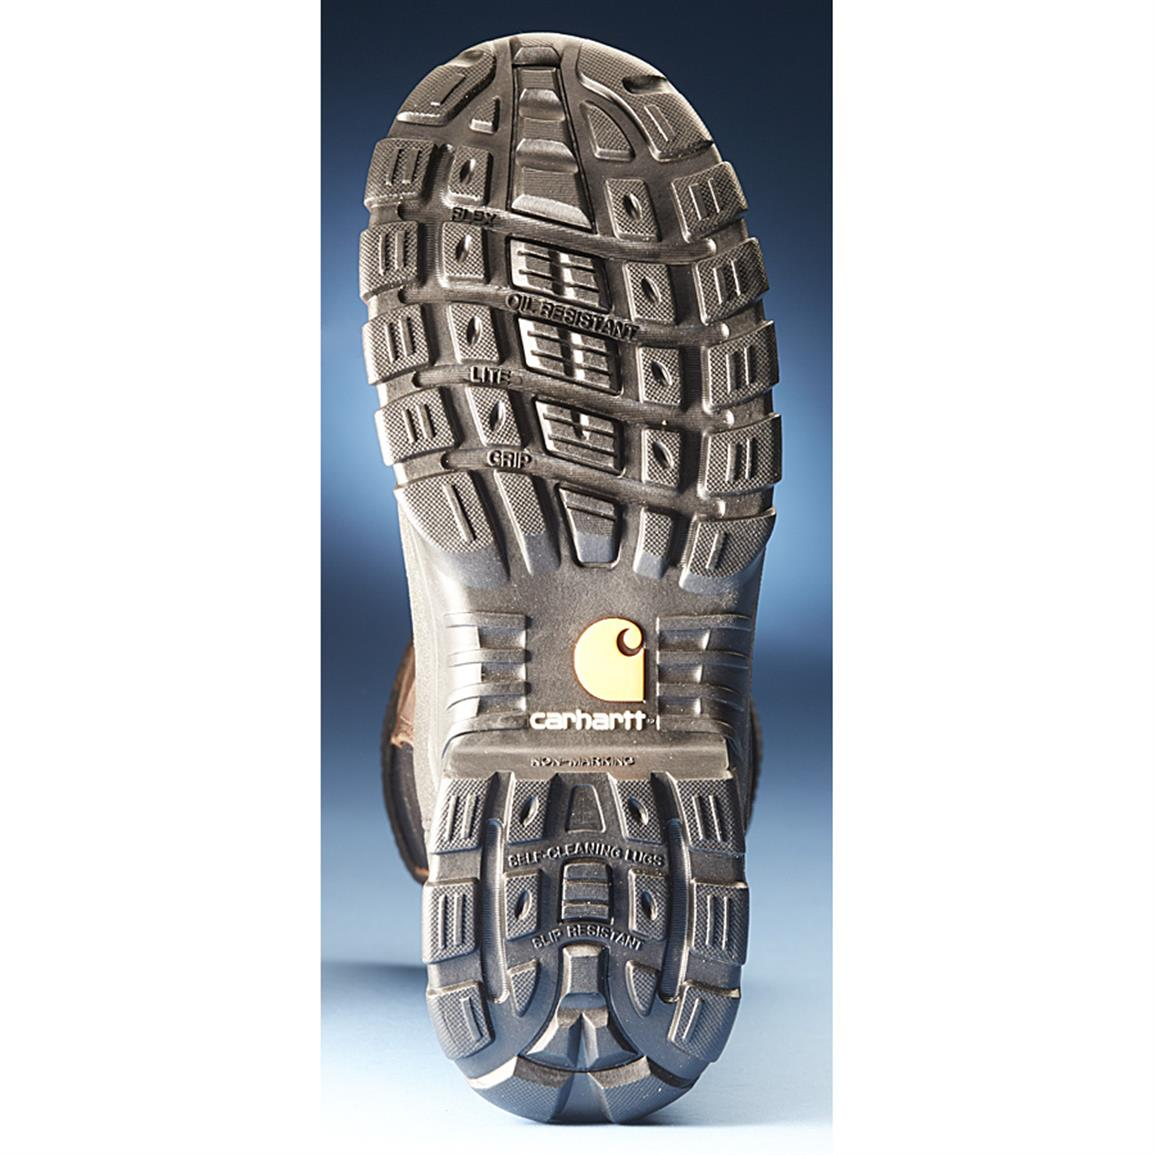 Abrasion-resistant rubber outsole with gripping lugs and ladder lock channels